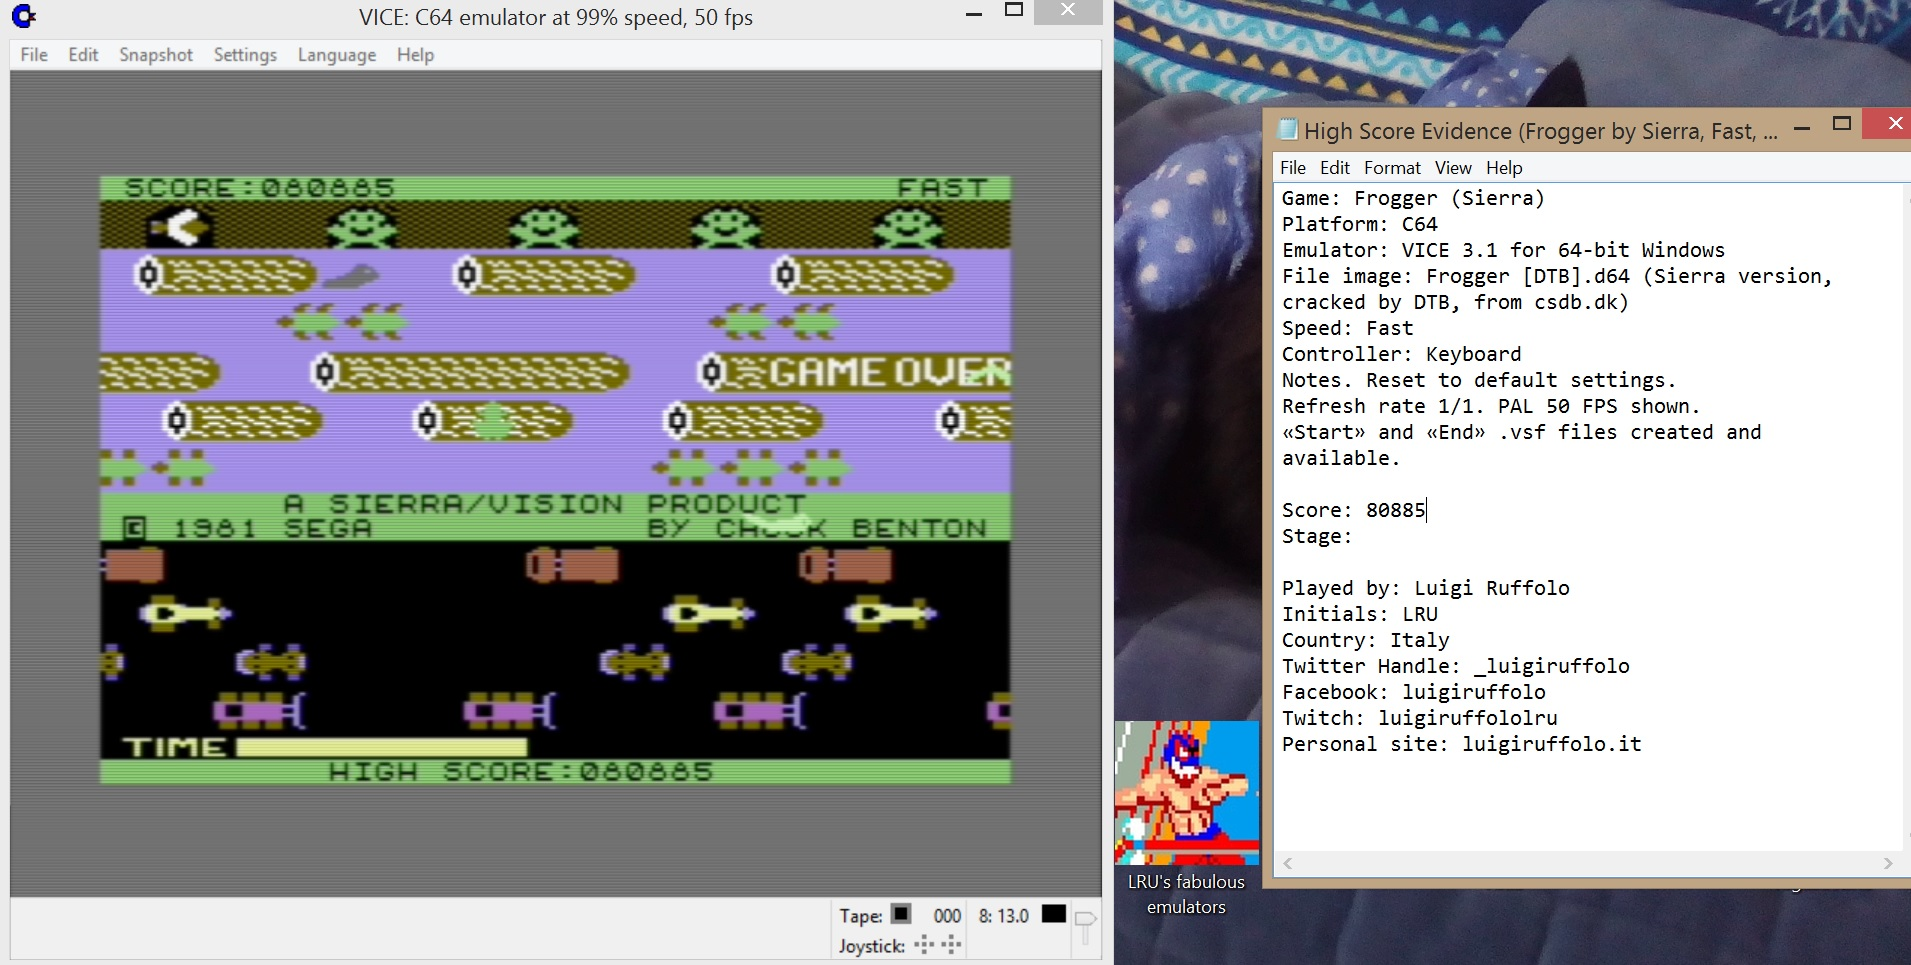 LuigiRuffolo: Frogger: Sierra (Commodore 64 Emulated) 80,885 points on 2020-05-31 03:08:07